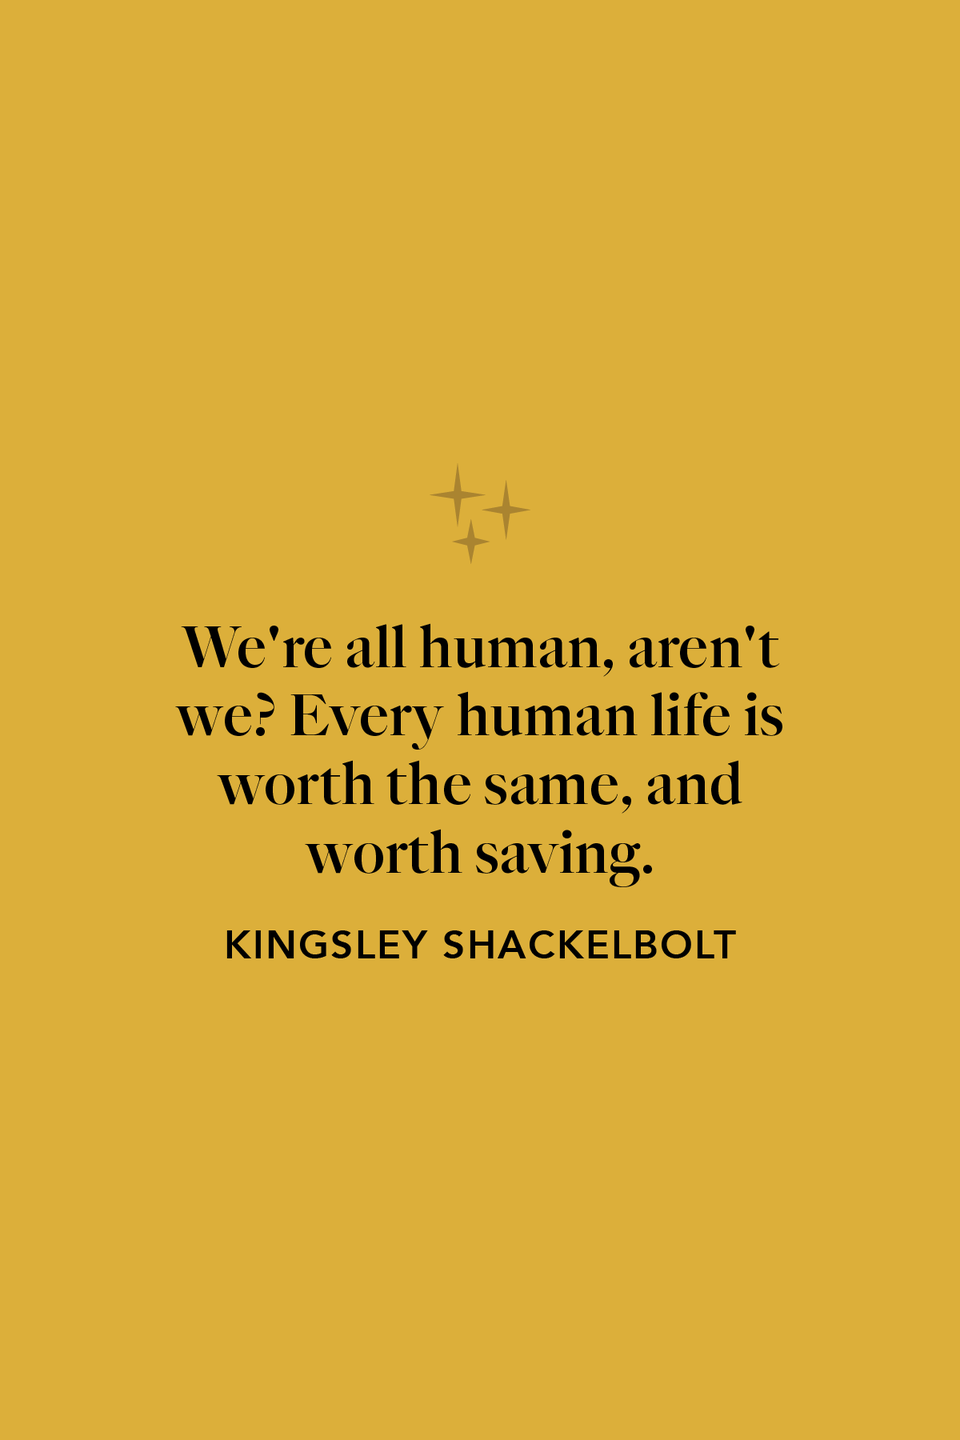 """<p>""""We're all human, aren't we? Every human life is worth the same, and worth saving,"""" Kingsley Shacklebolt says in chapter 22 of <em>The Deathly Hallows</em>.</p>"""